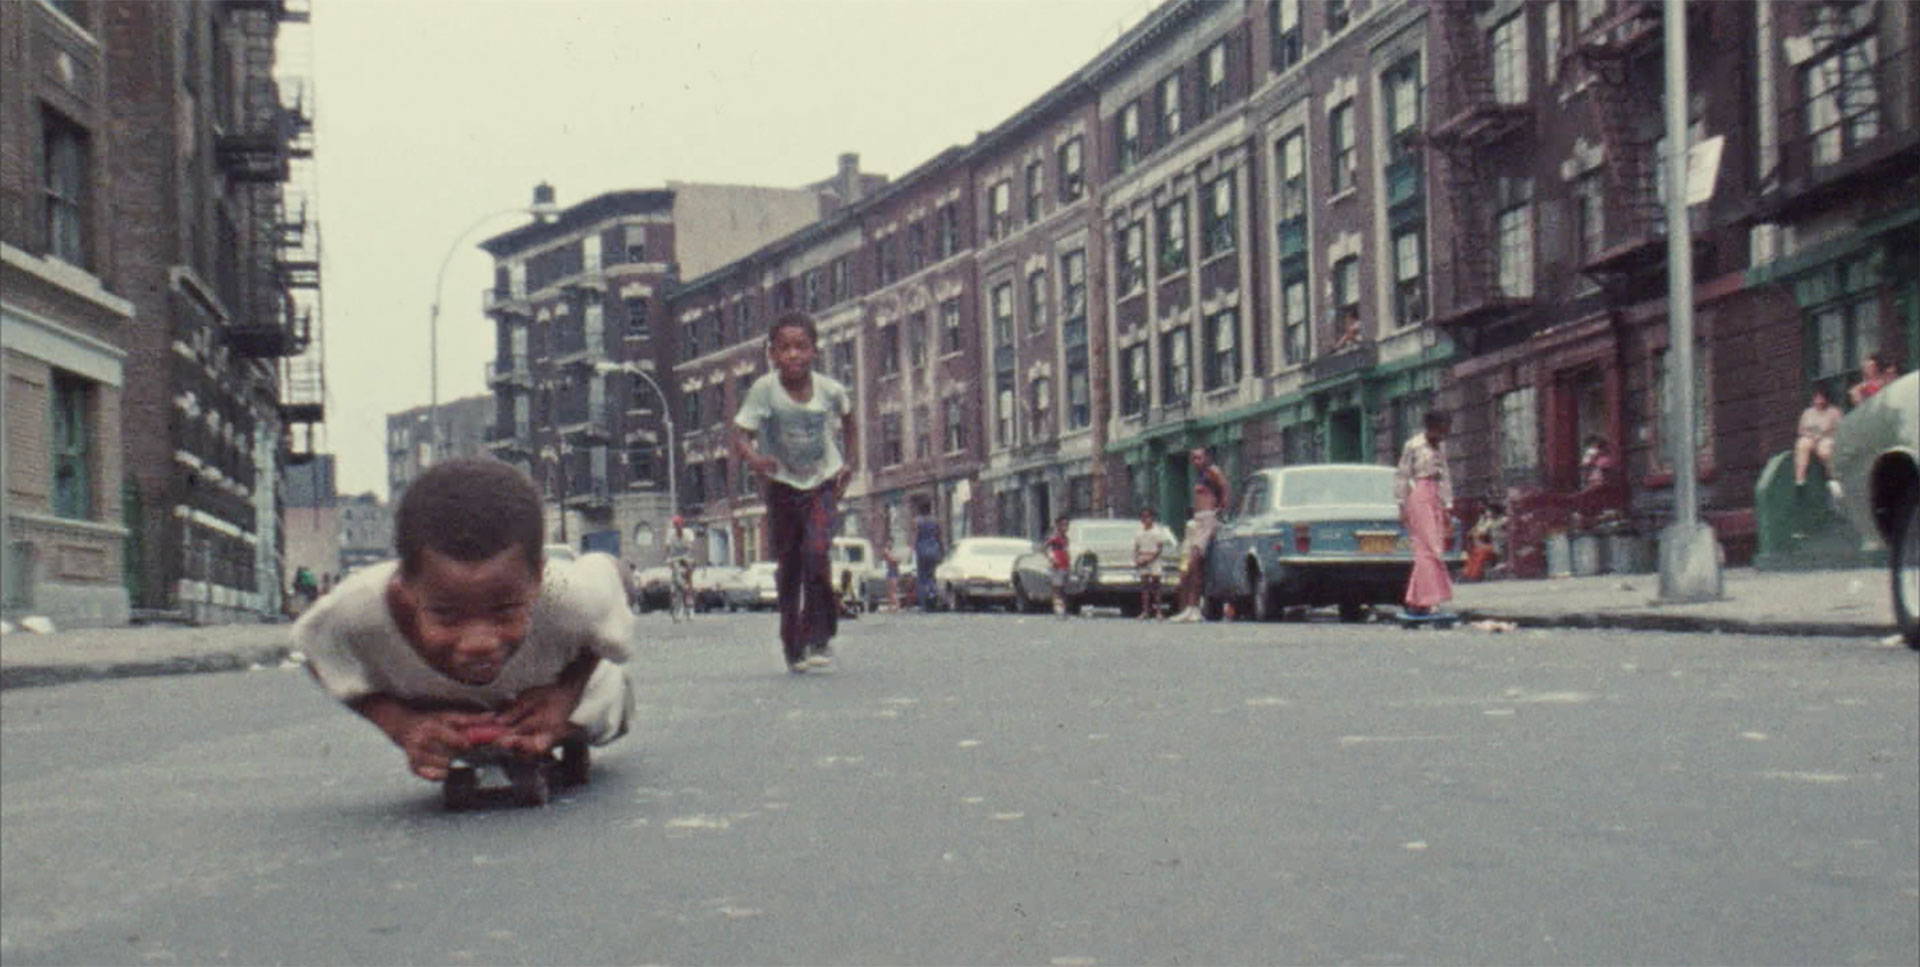 Decade of Fire, kids skating in the Bronx 1970s